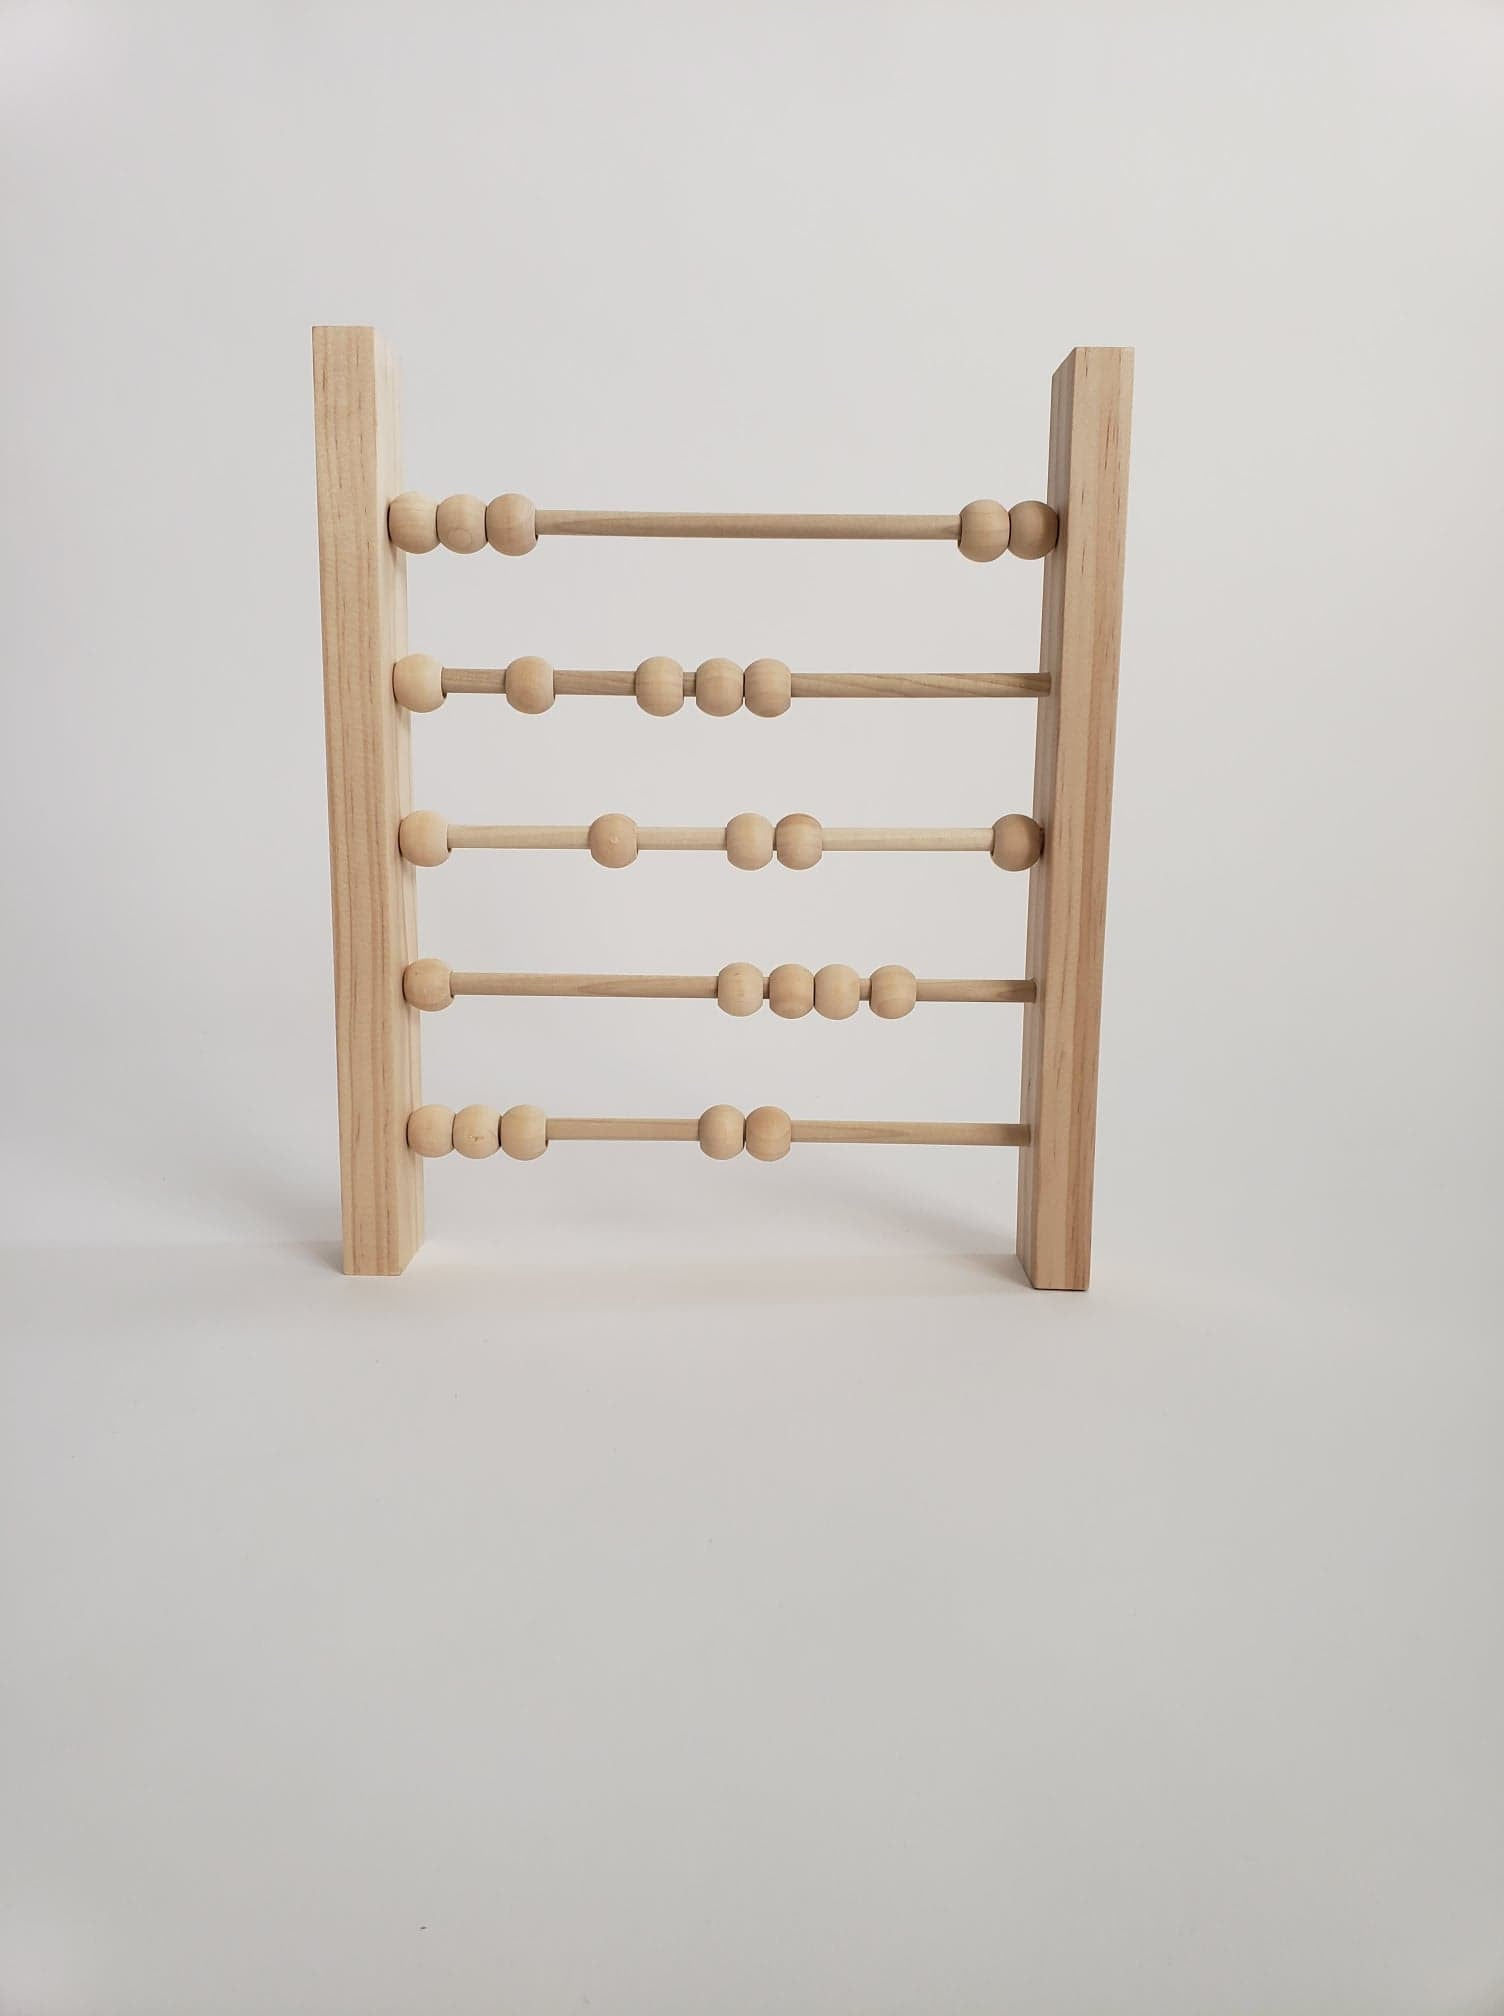 Buy online beautiful and functionable Abacus - OliveWorldCo